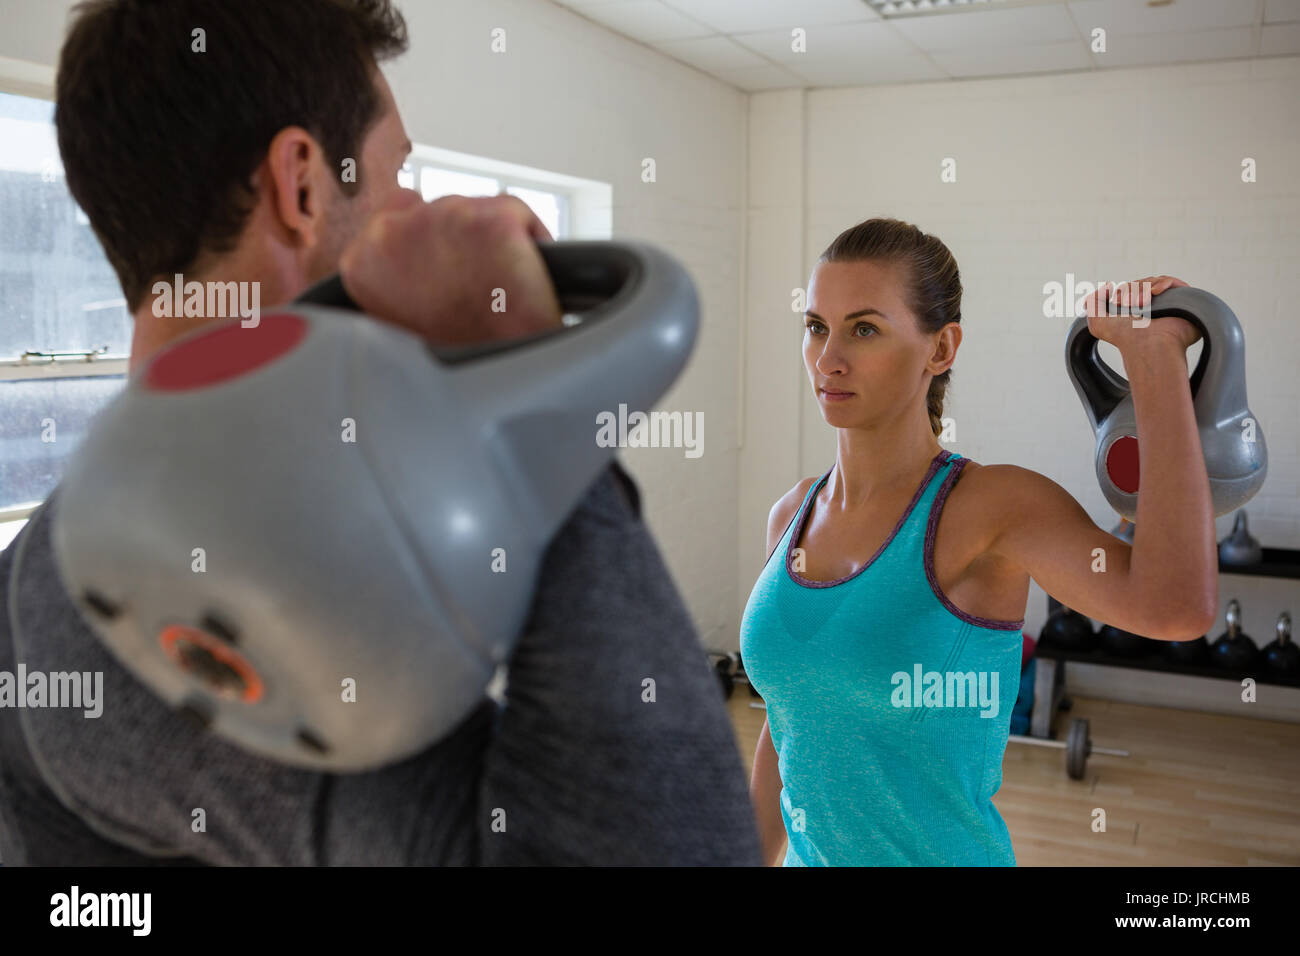 Athletes lifting kettlebells while facing each other in gym Stock Photo